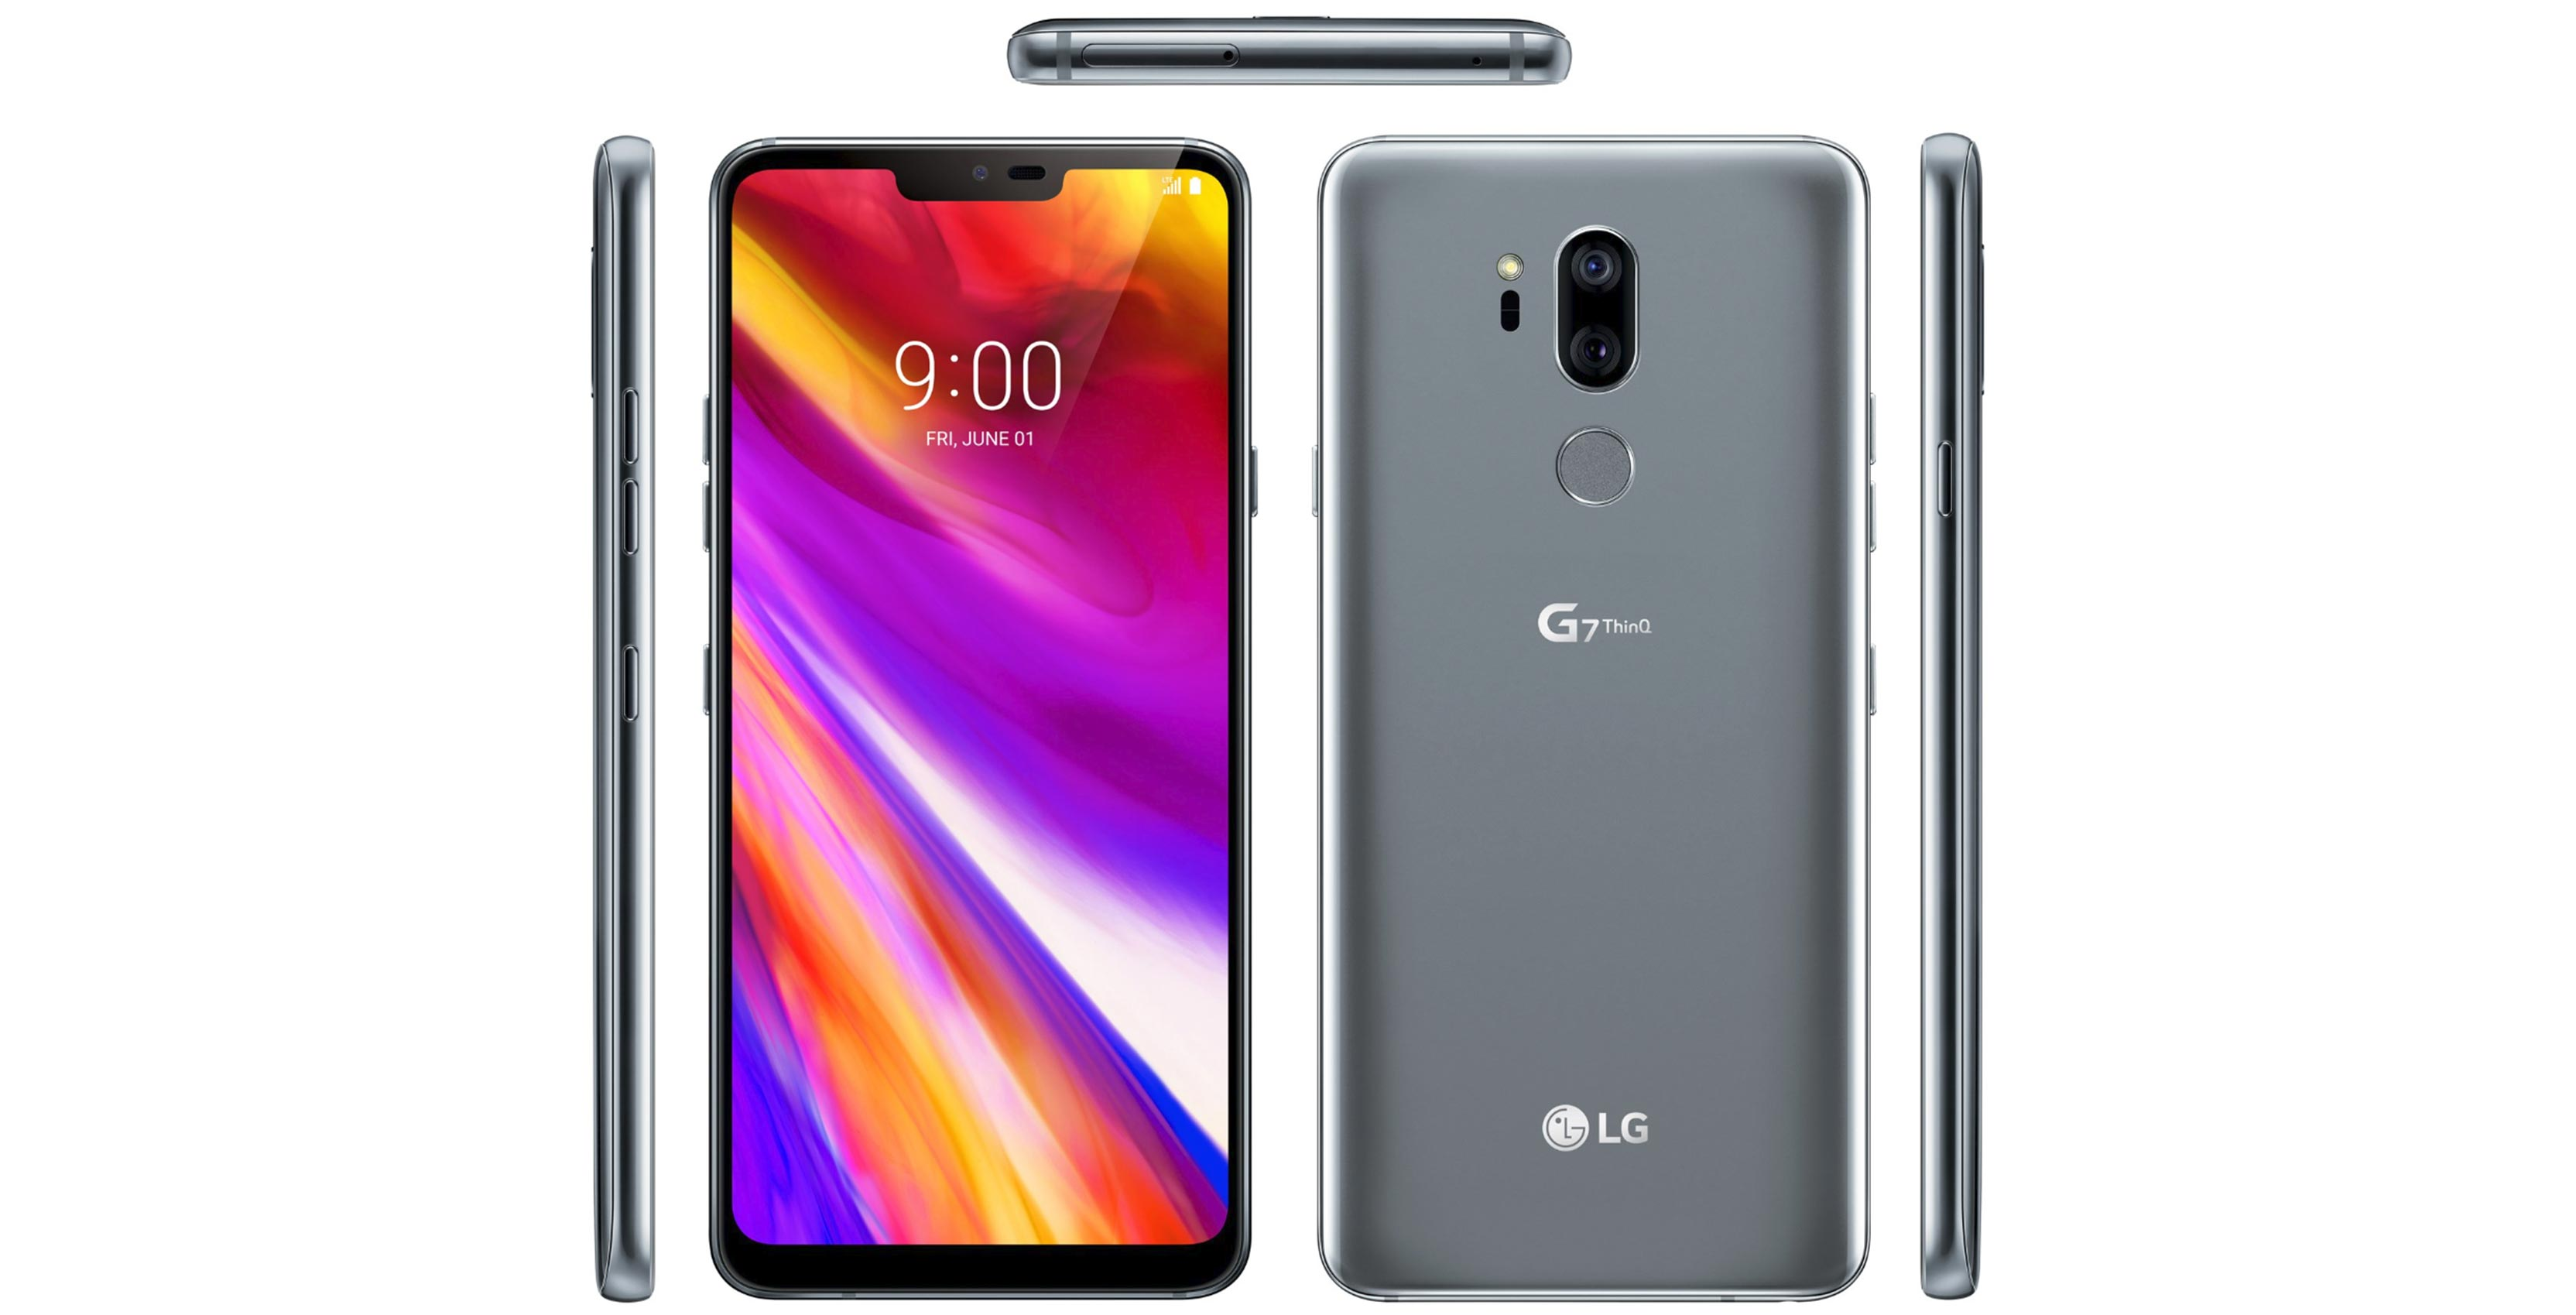 LG G7 ThinQ Super Bright Display cranks up the pixels, controls